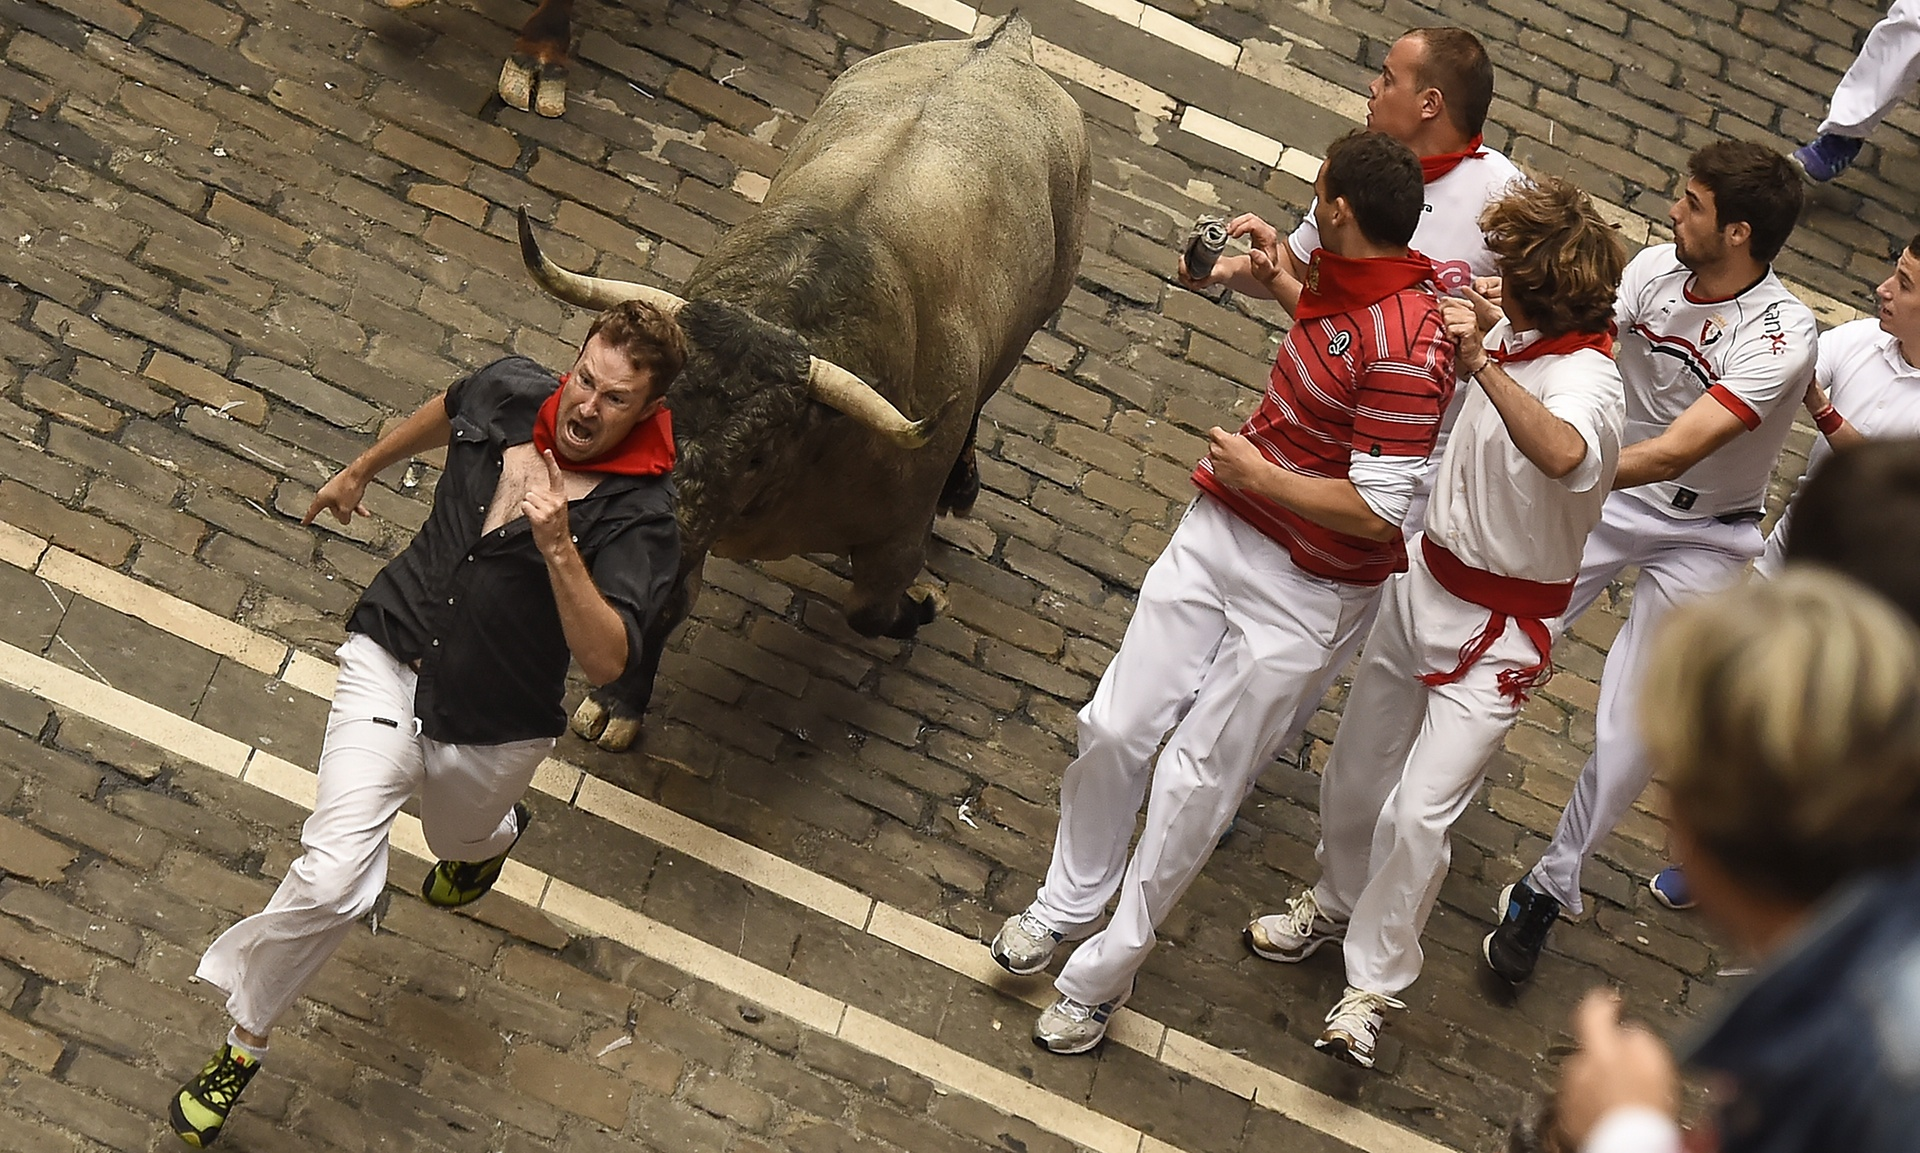 running with bulls Running of the bulls history few foreigners who actually dare run with the bulls know the rich history surrounding this deadly event the history of spain's bull run can be traced back over a thousand years when wild bulls migrated across spain.